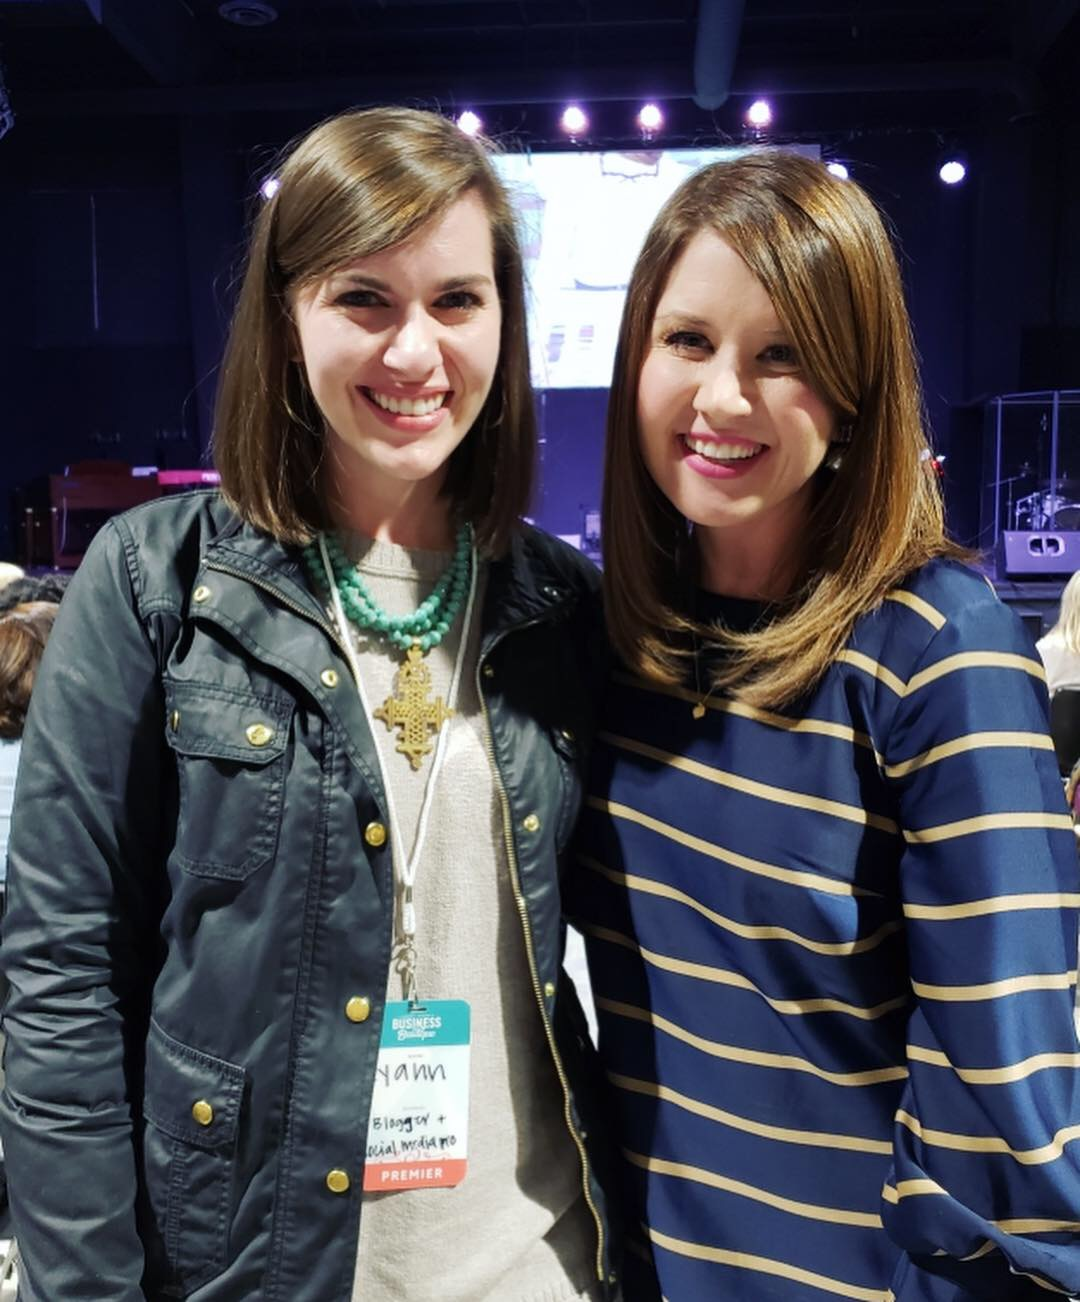 Total fangirl moment getting to meet author Emily Ley!